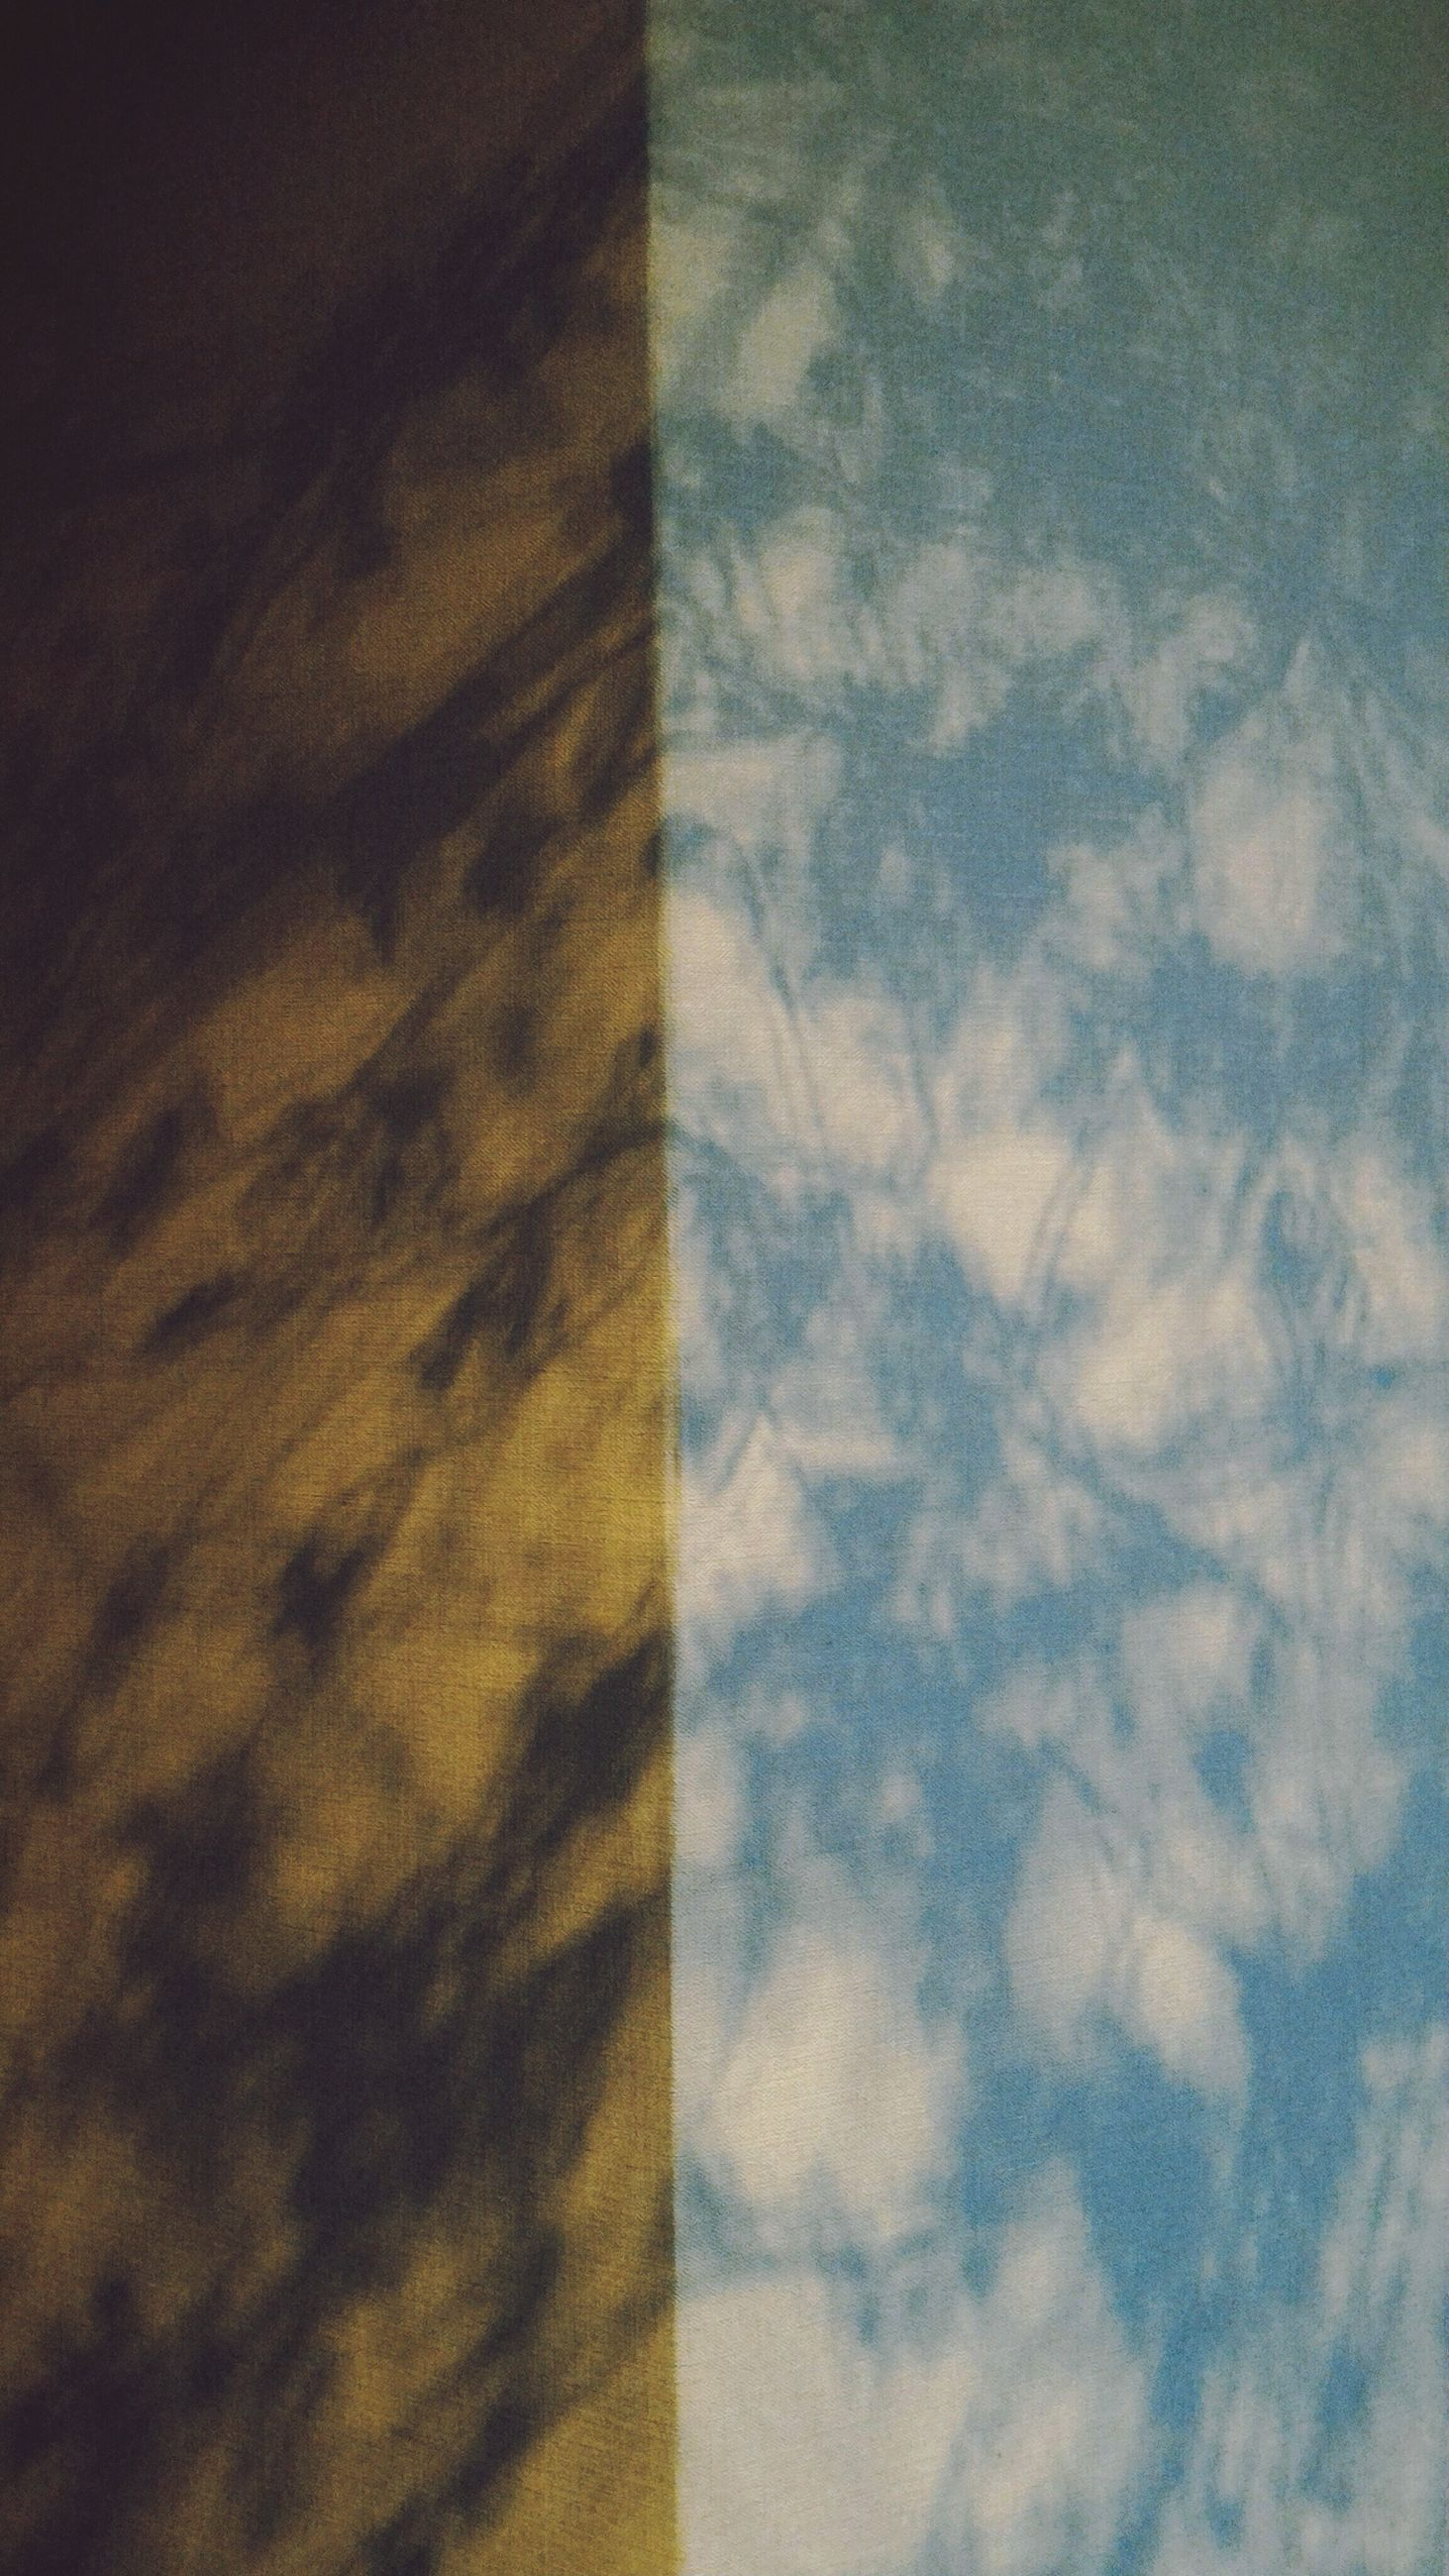 pattern, backgrounds, shadow, no people, textured, full frame, nature, close-up, outdoors, day